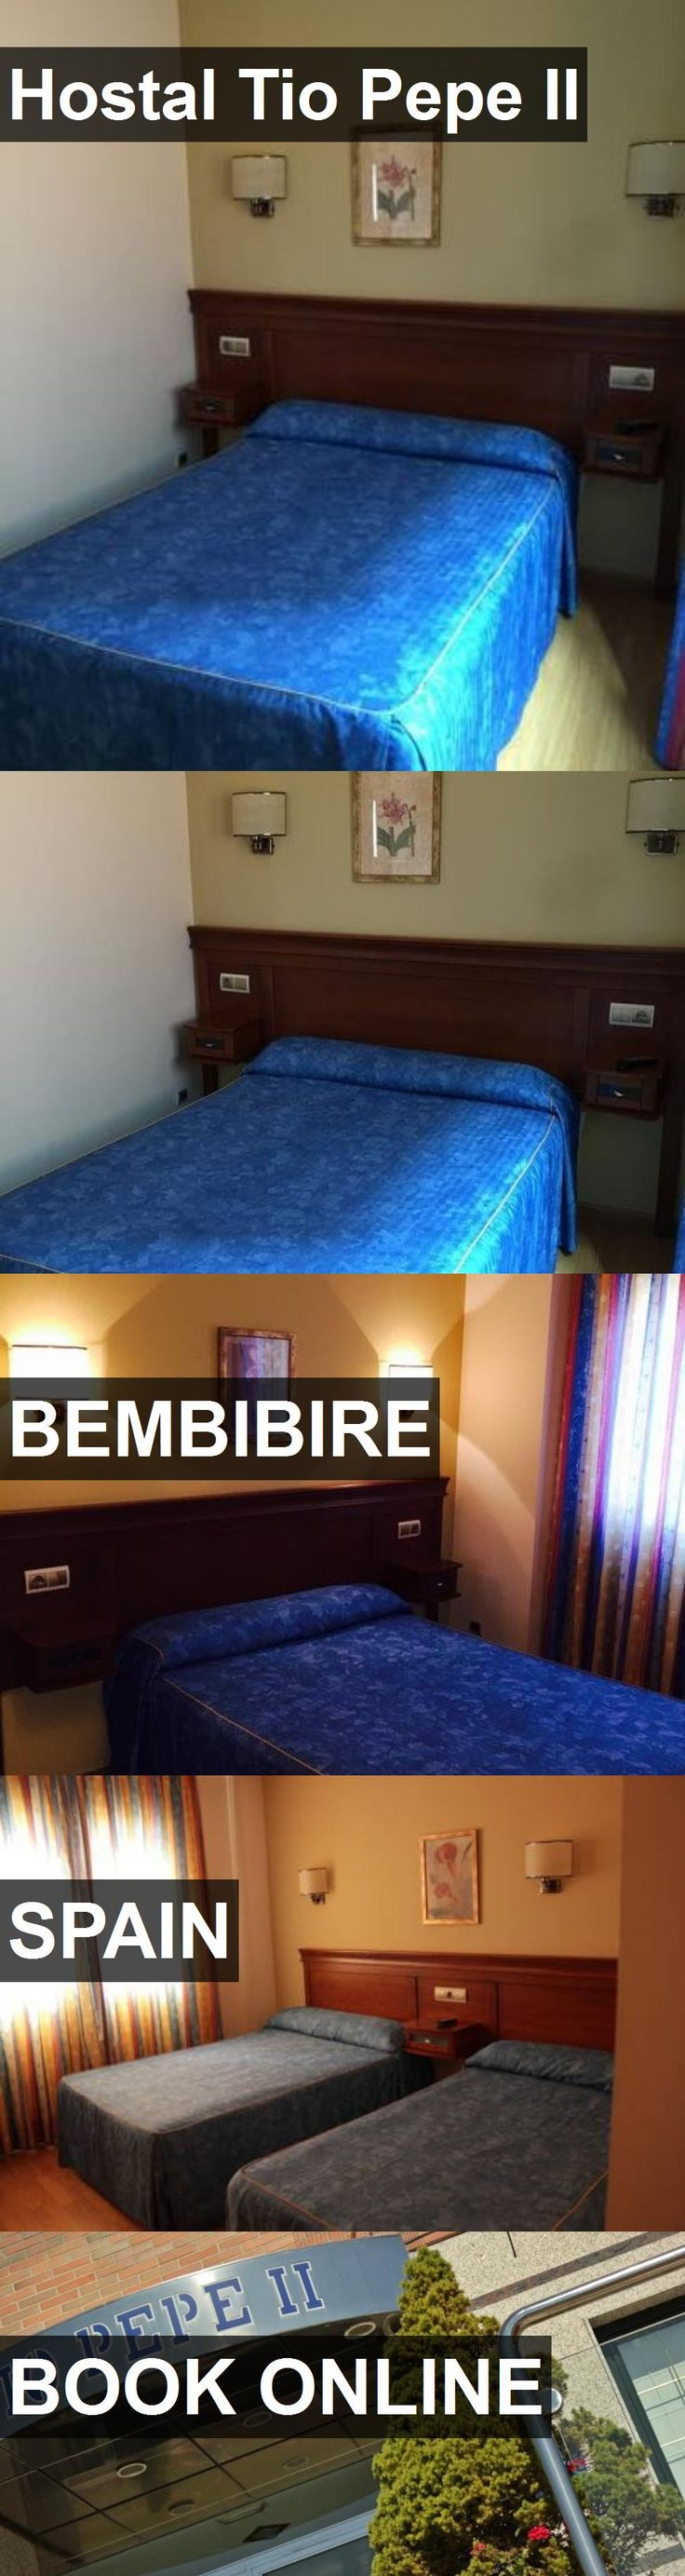 Hotel Hostal Tio Pepe II in Bembibire, Spain. For more information, photos, reviews and best prices please follow the link. #Spain #Bembibire #travel #vacation #hotel